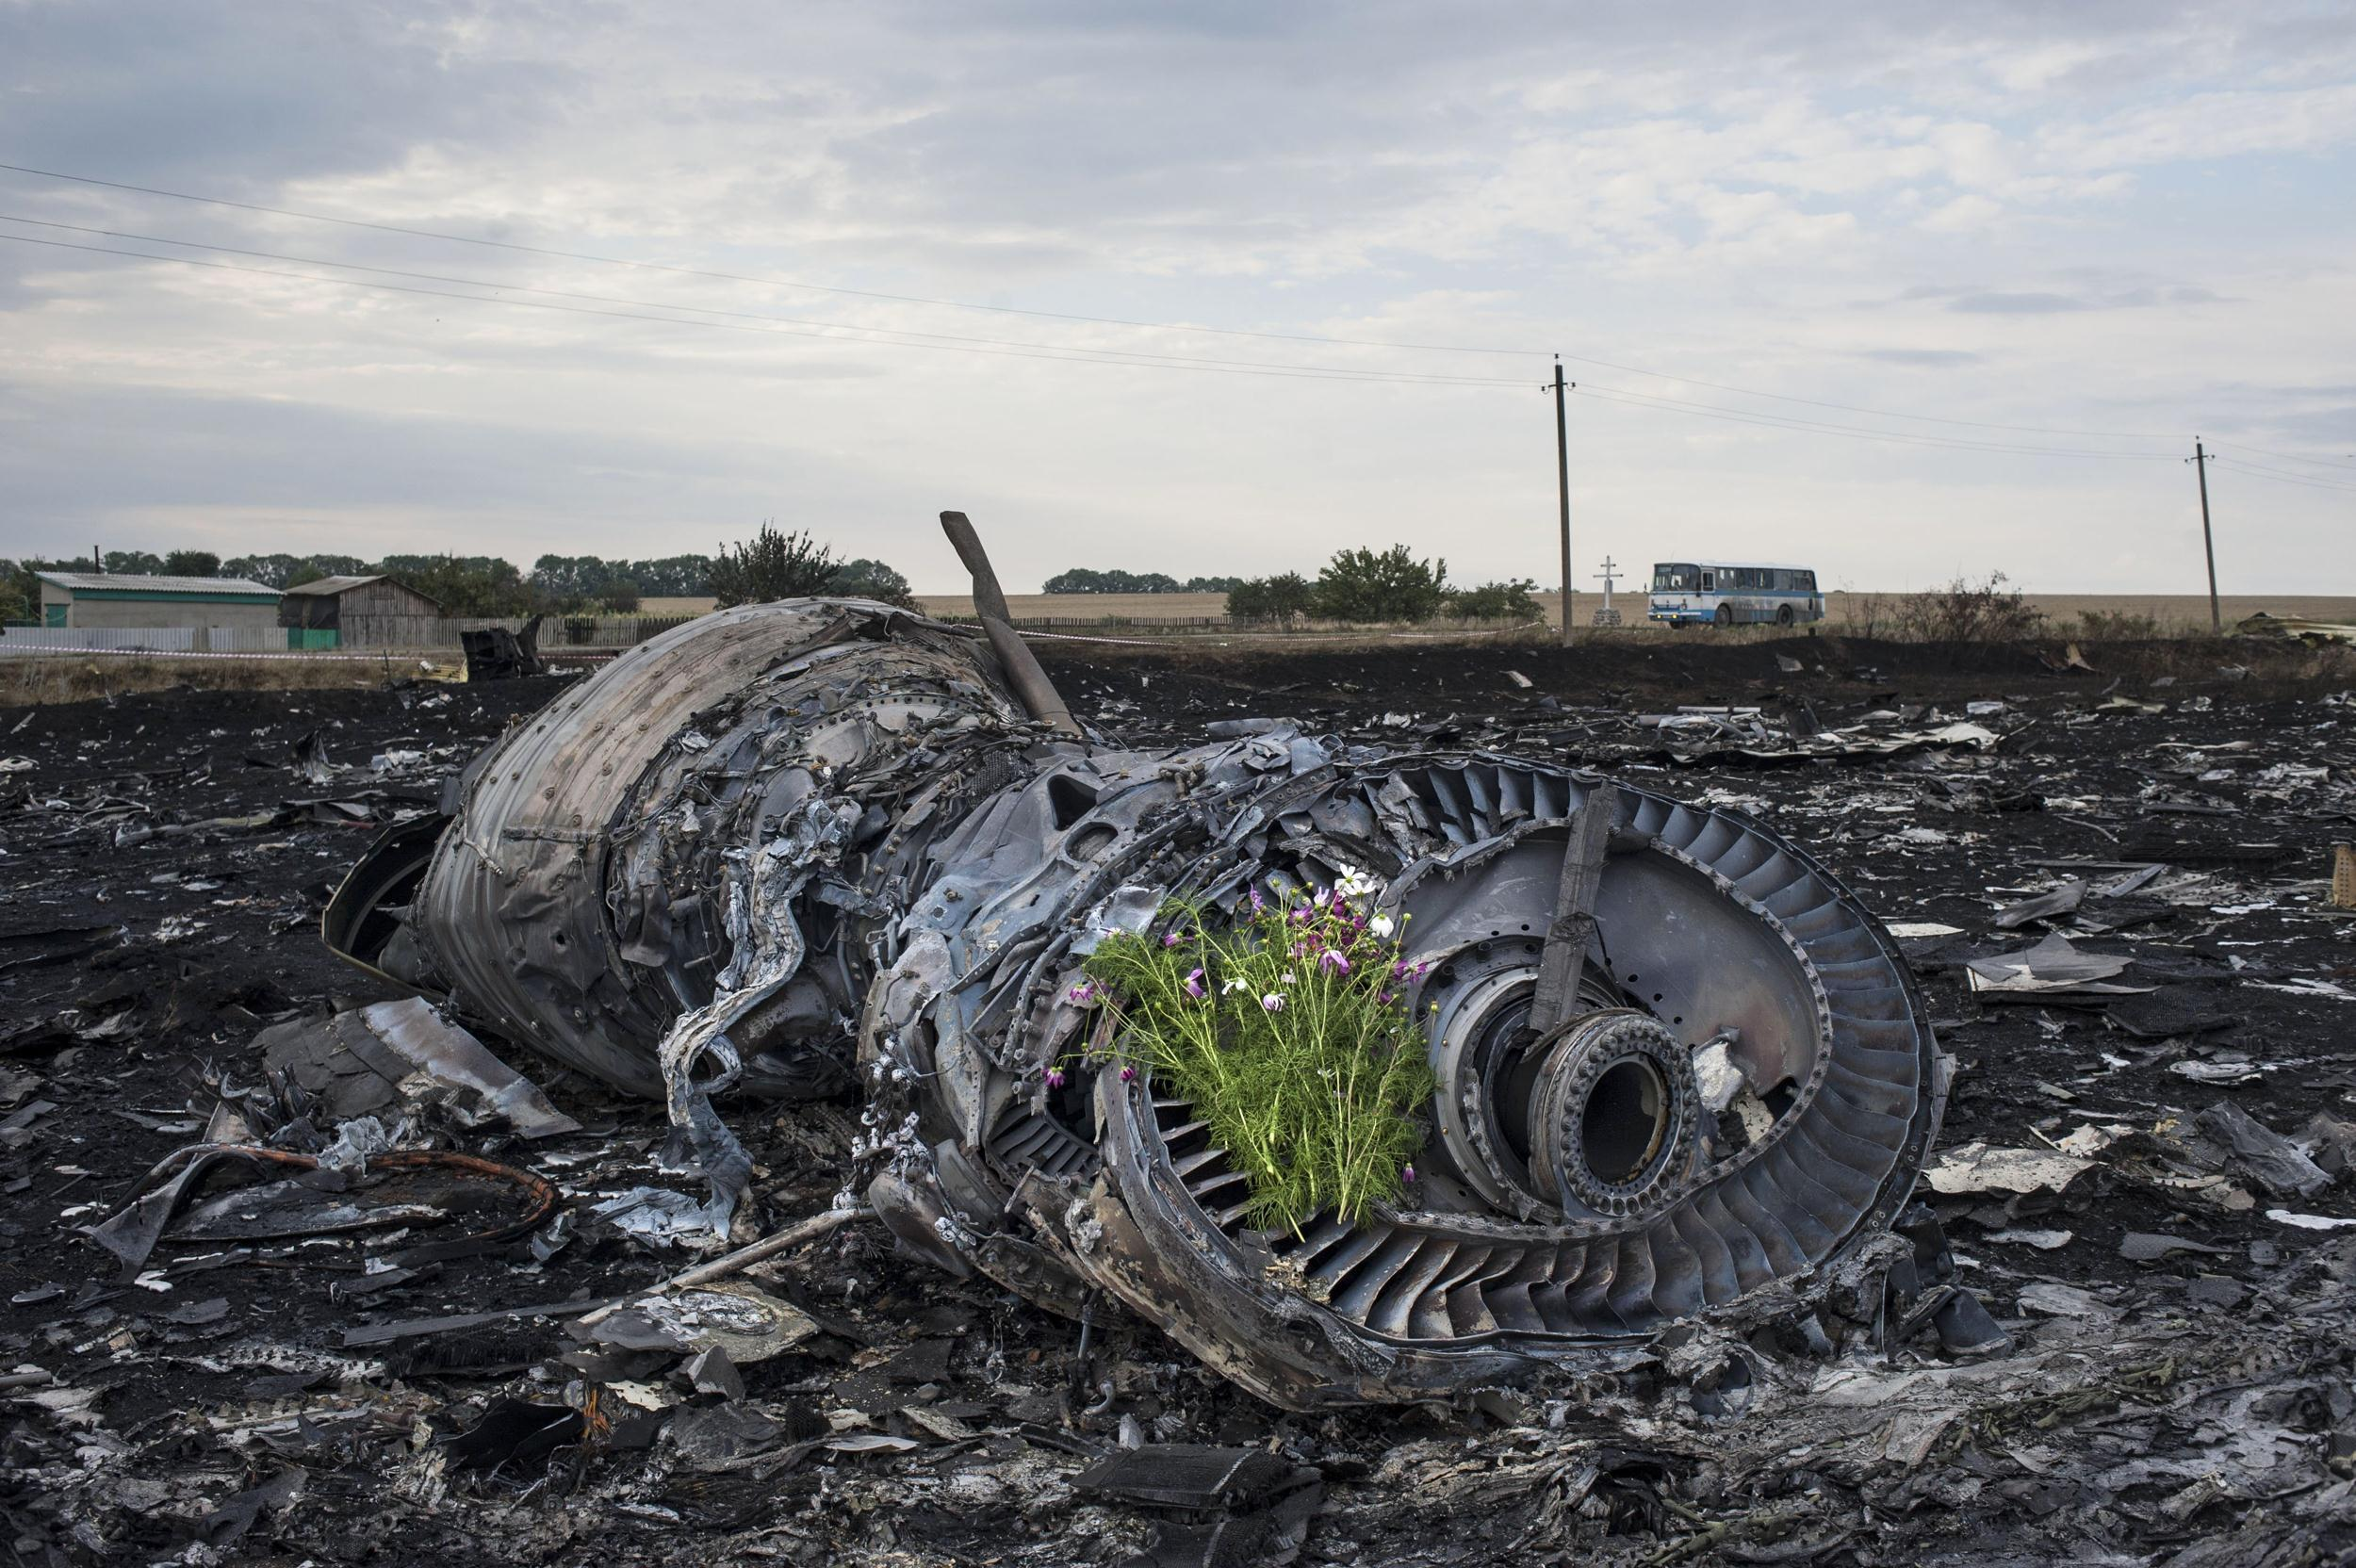 MH17 engine. All the credible evidence points to Kiev and Washington as the perpetrators, albeit protected by a huge propaganda shield. False flag, anyone?